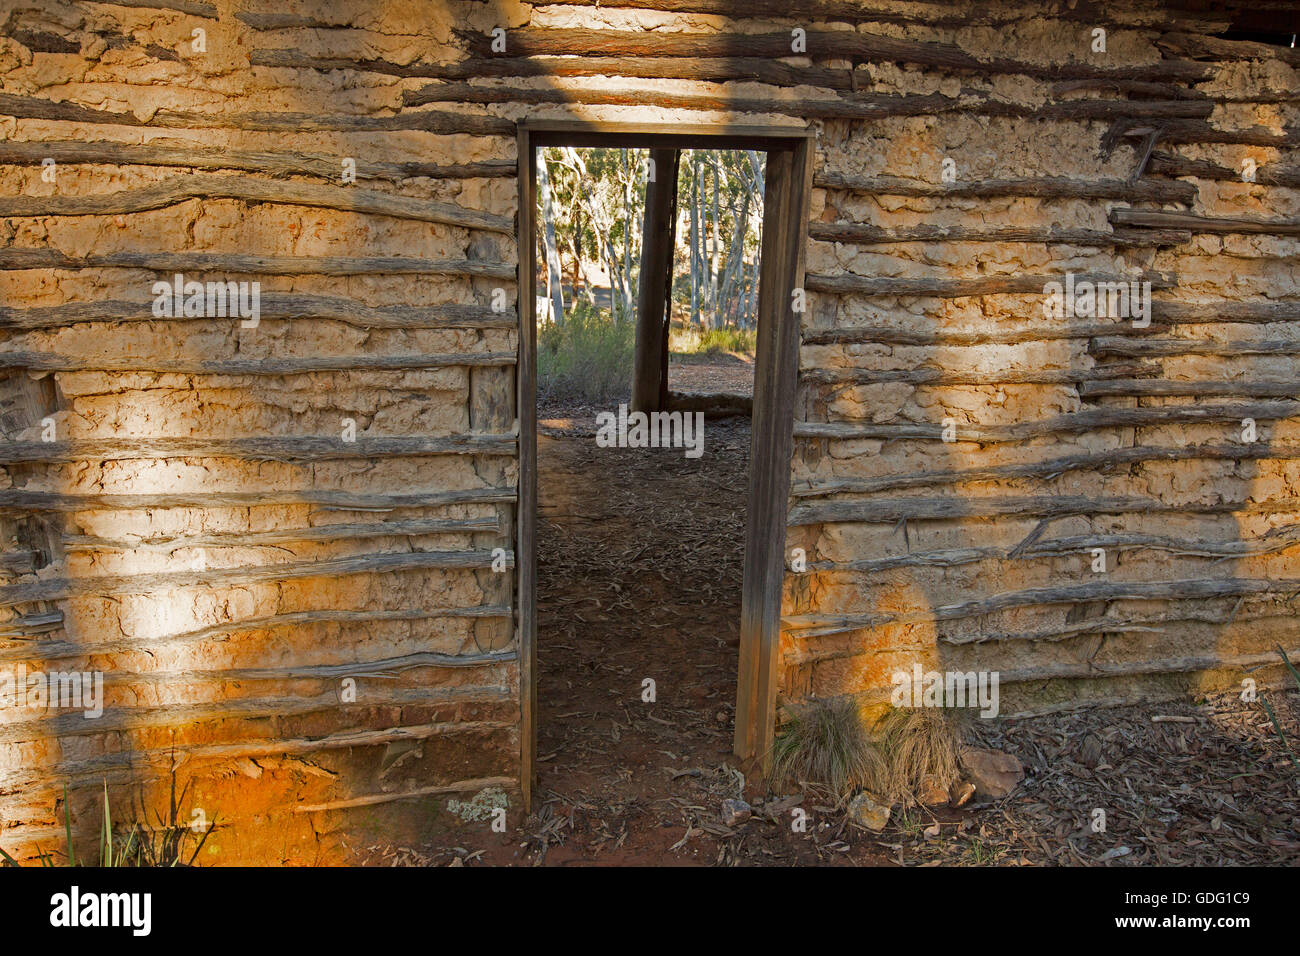 Walls & doorway of building made with wattle & daub showing a simple inexpensive method of construction - Stock Image